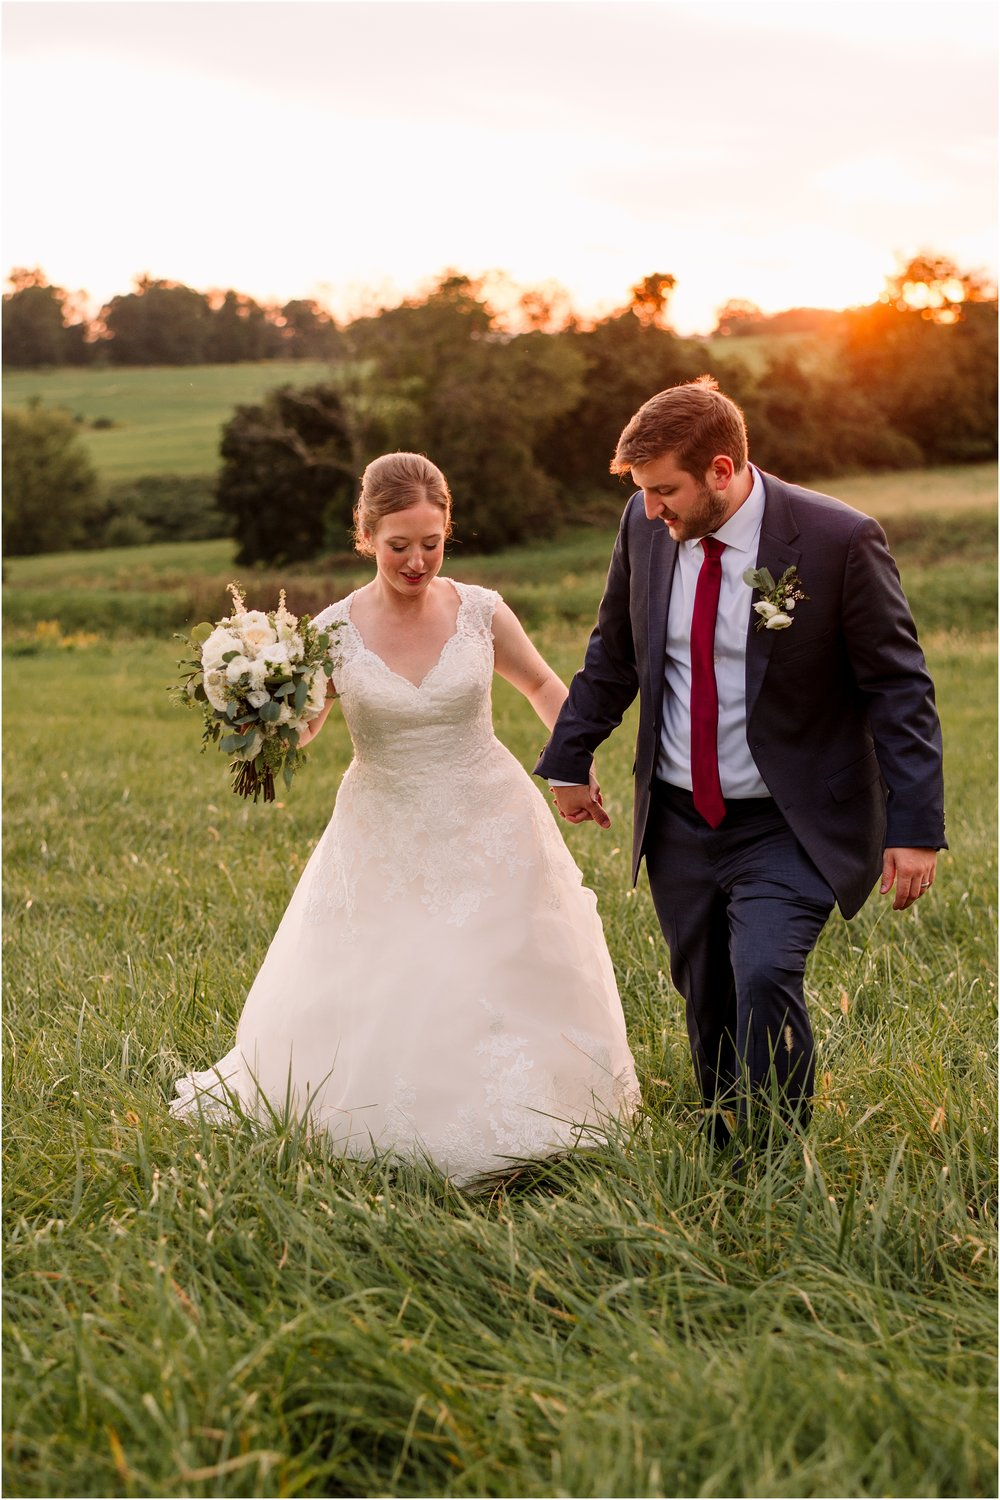 hannah leigh photography Wyndridge Farm Wedding York PA_1561.jpg